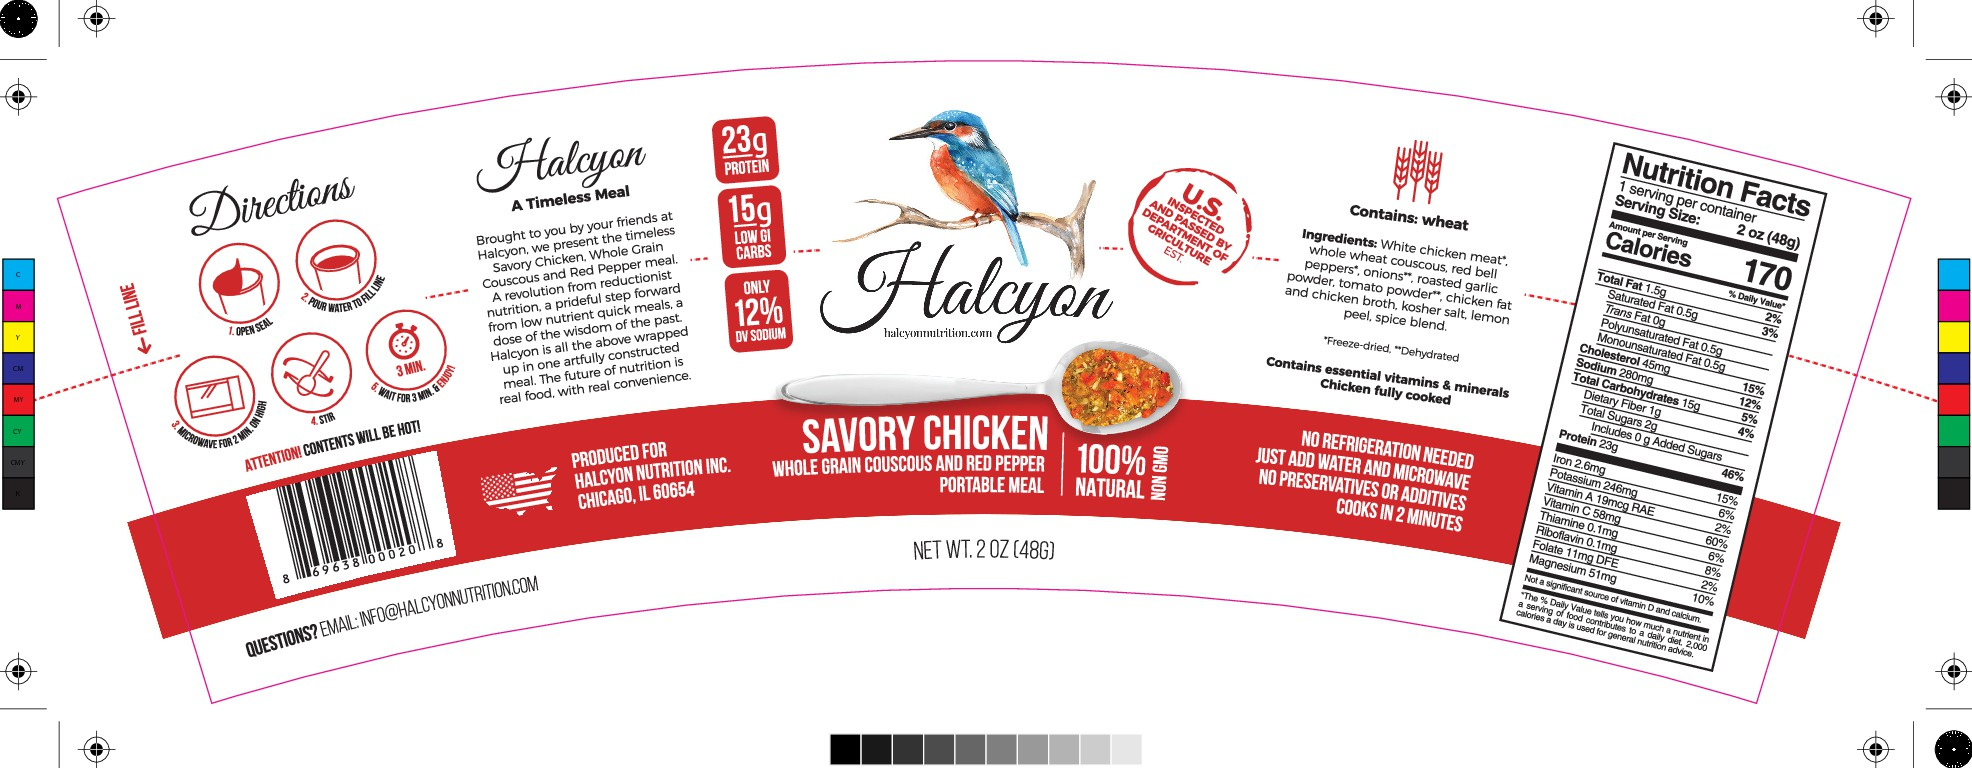 Looking for Sleek, Modern Label Design for Healthy Meal Cup